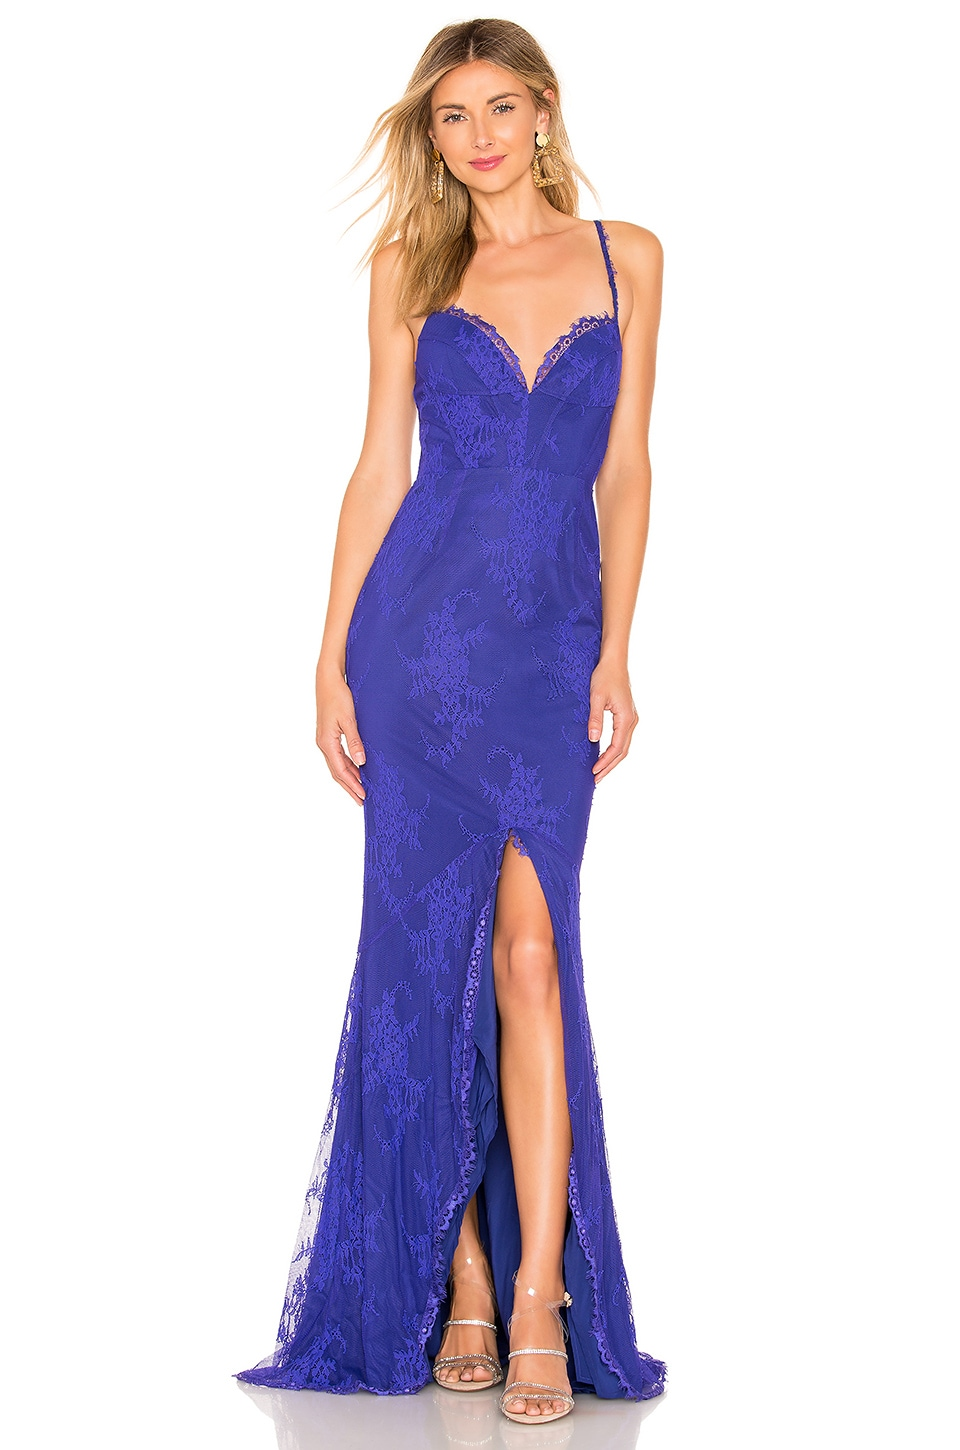 X by NBD Kayla Gown in Violet